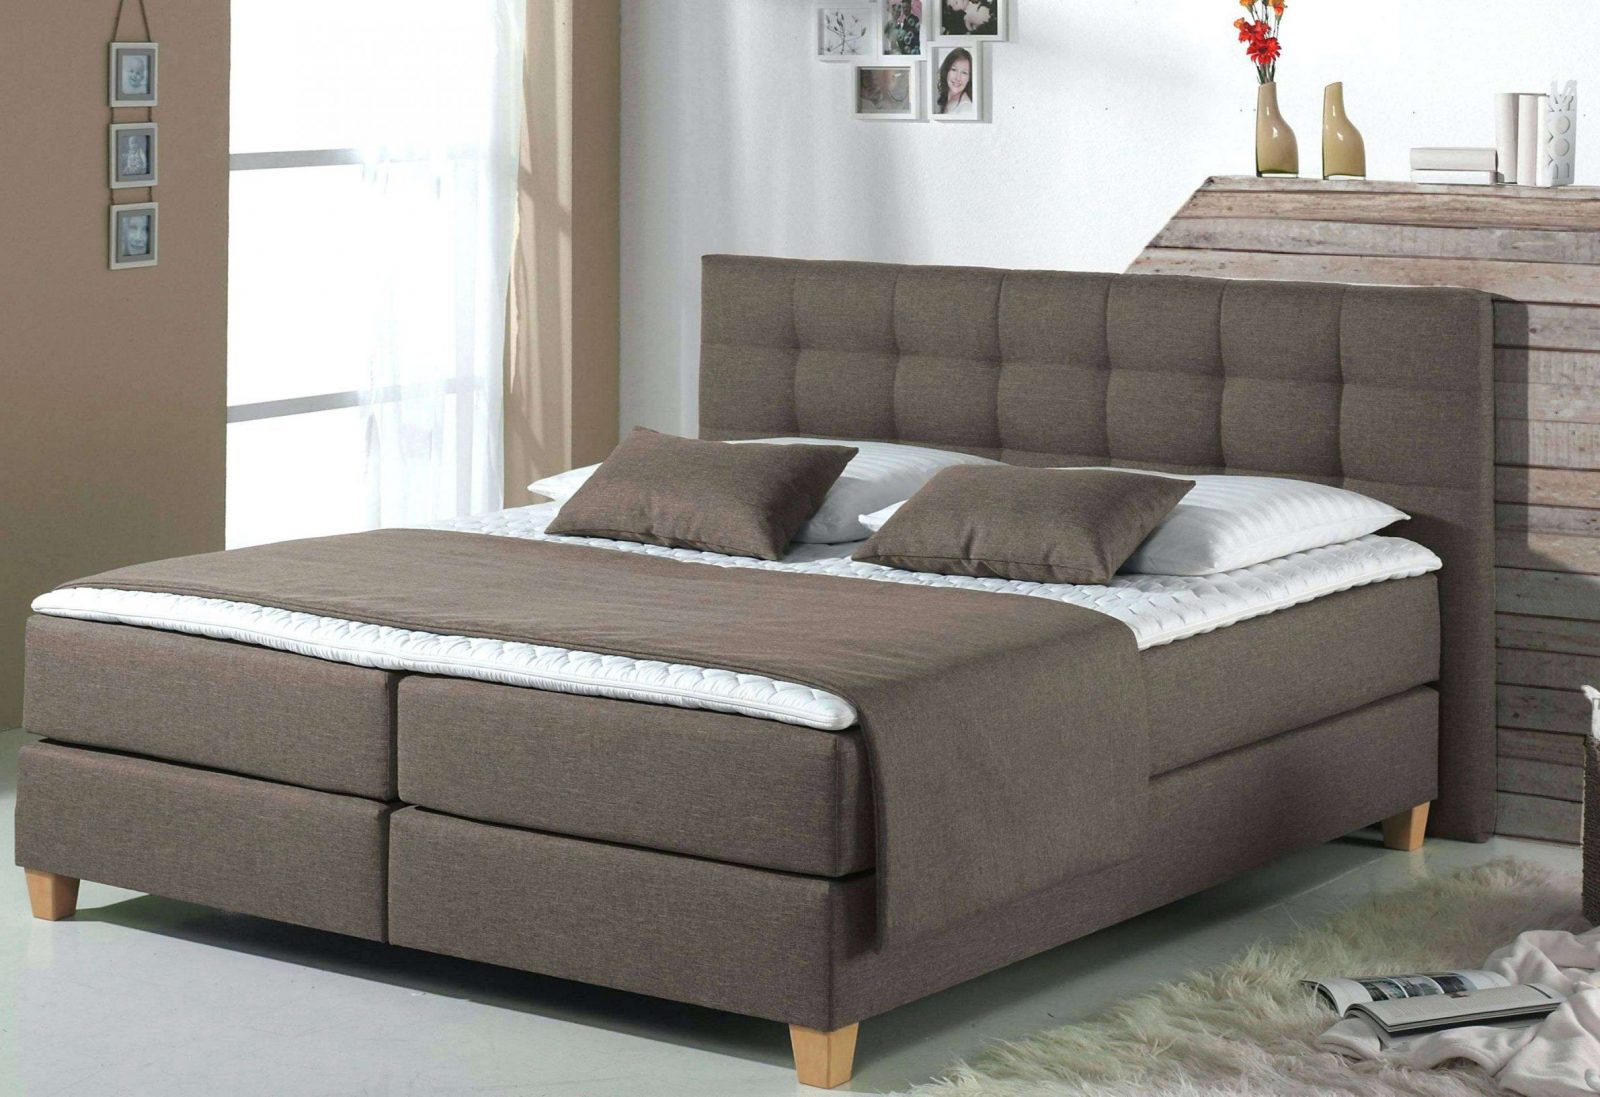 boxspringbett xxl mann mobilia haus design ideen. Black Bedroom Furniture Sets. Home Design Ideas